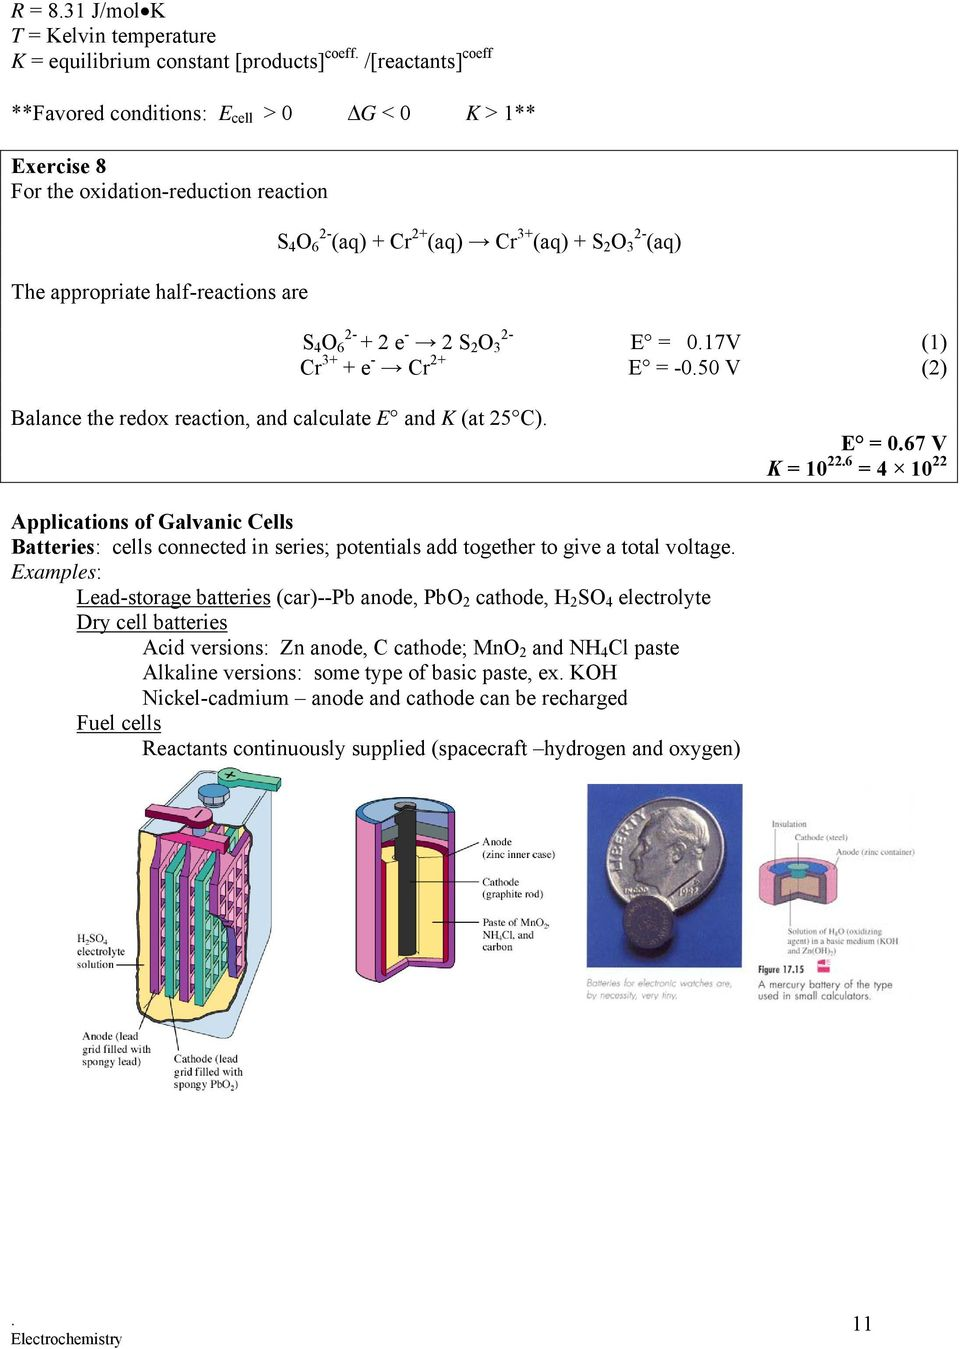 Ap Chemistry Electrochemistry Pdf Drybatterycelldiagramjpg Calculate E And K At 25 C 067 V 10 226 12 Electrolysis Electrolytic Cells